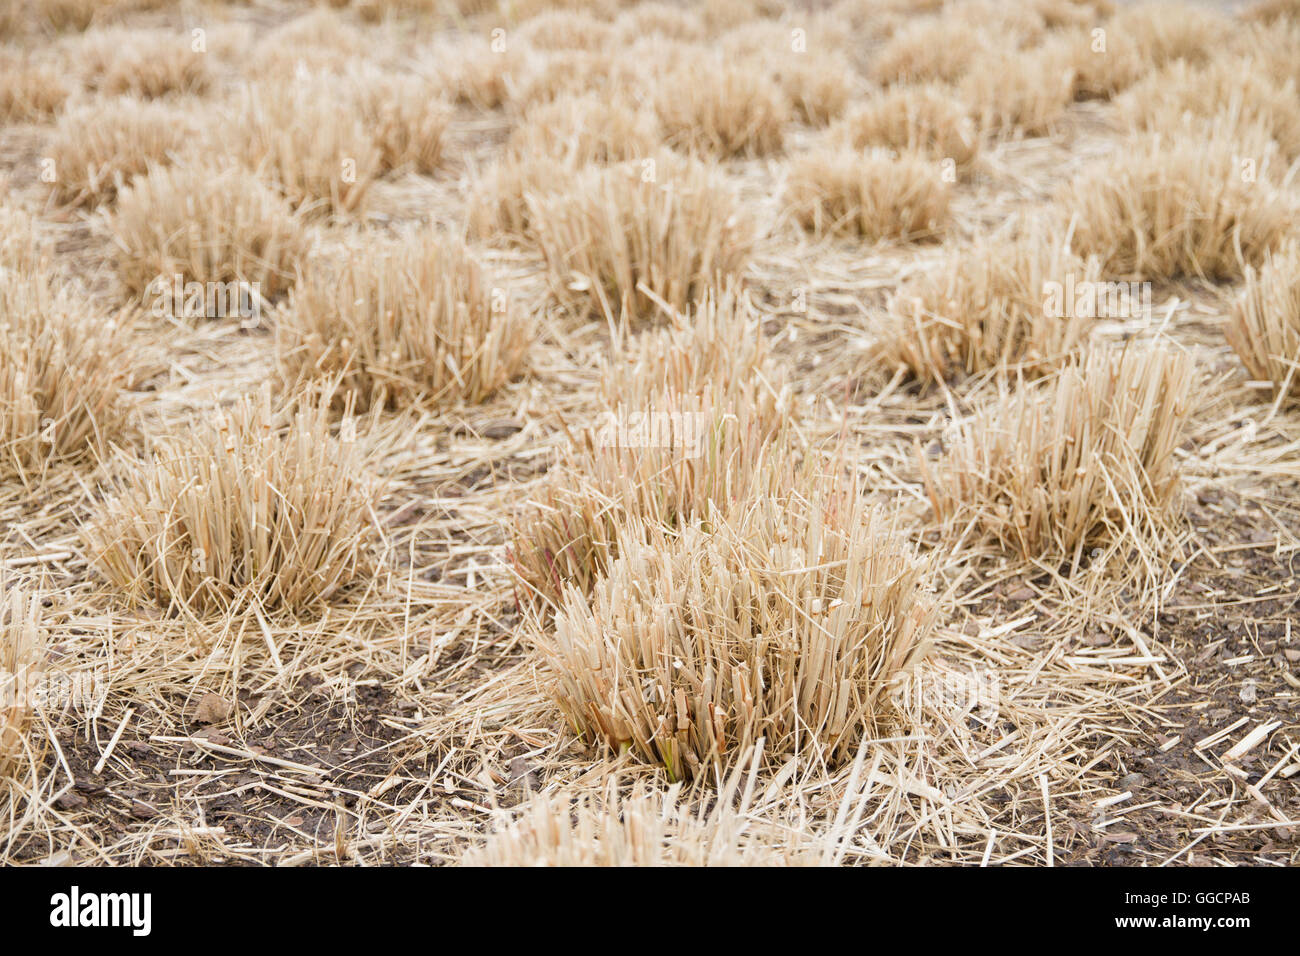 dry grass field background. Dry Grass Bundles As A Background - Stock Image Field D